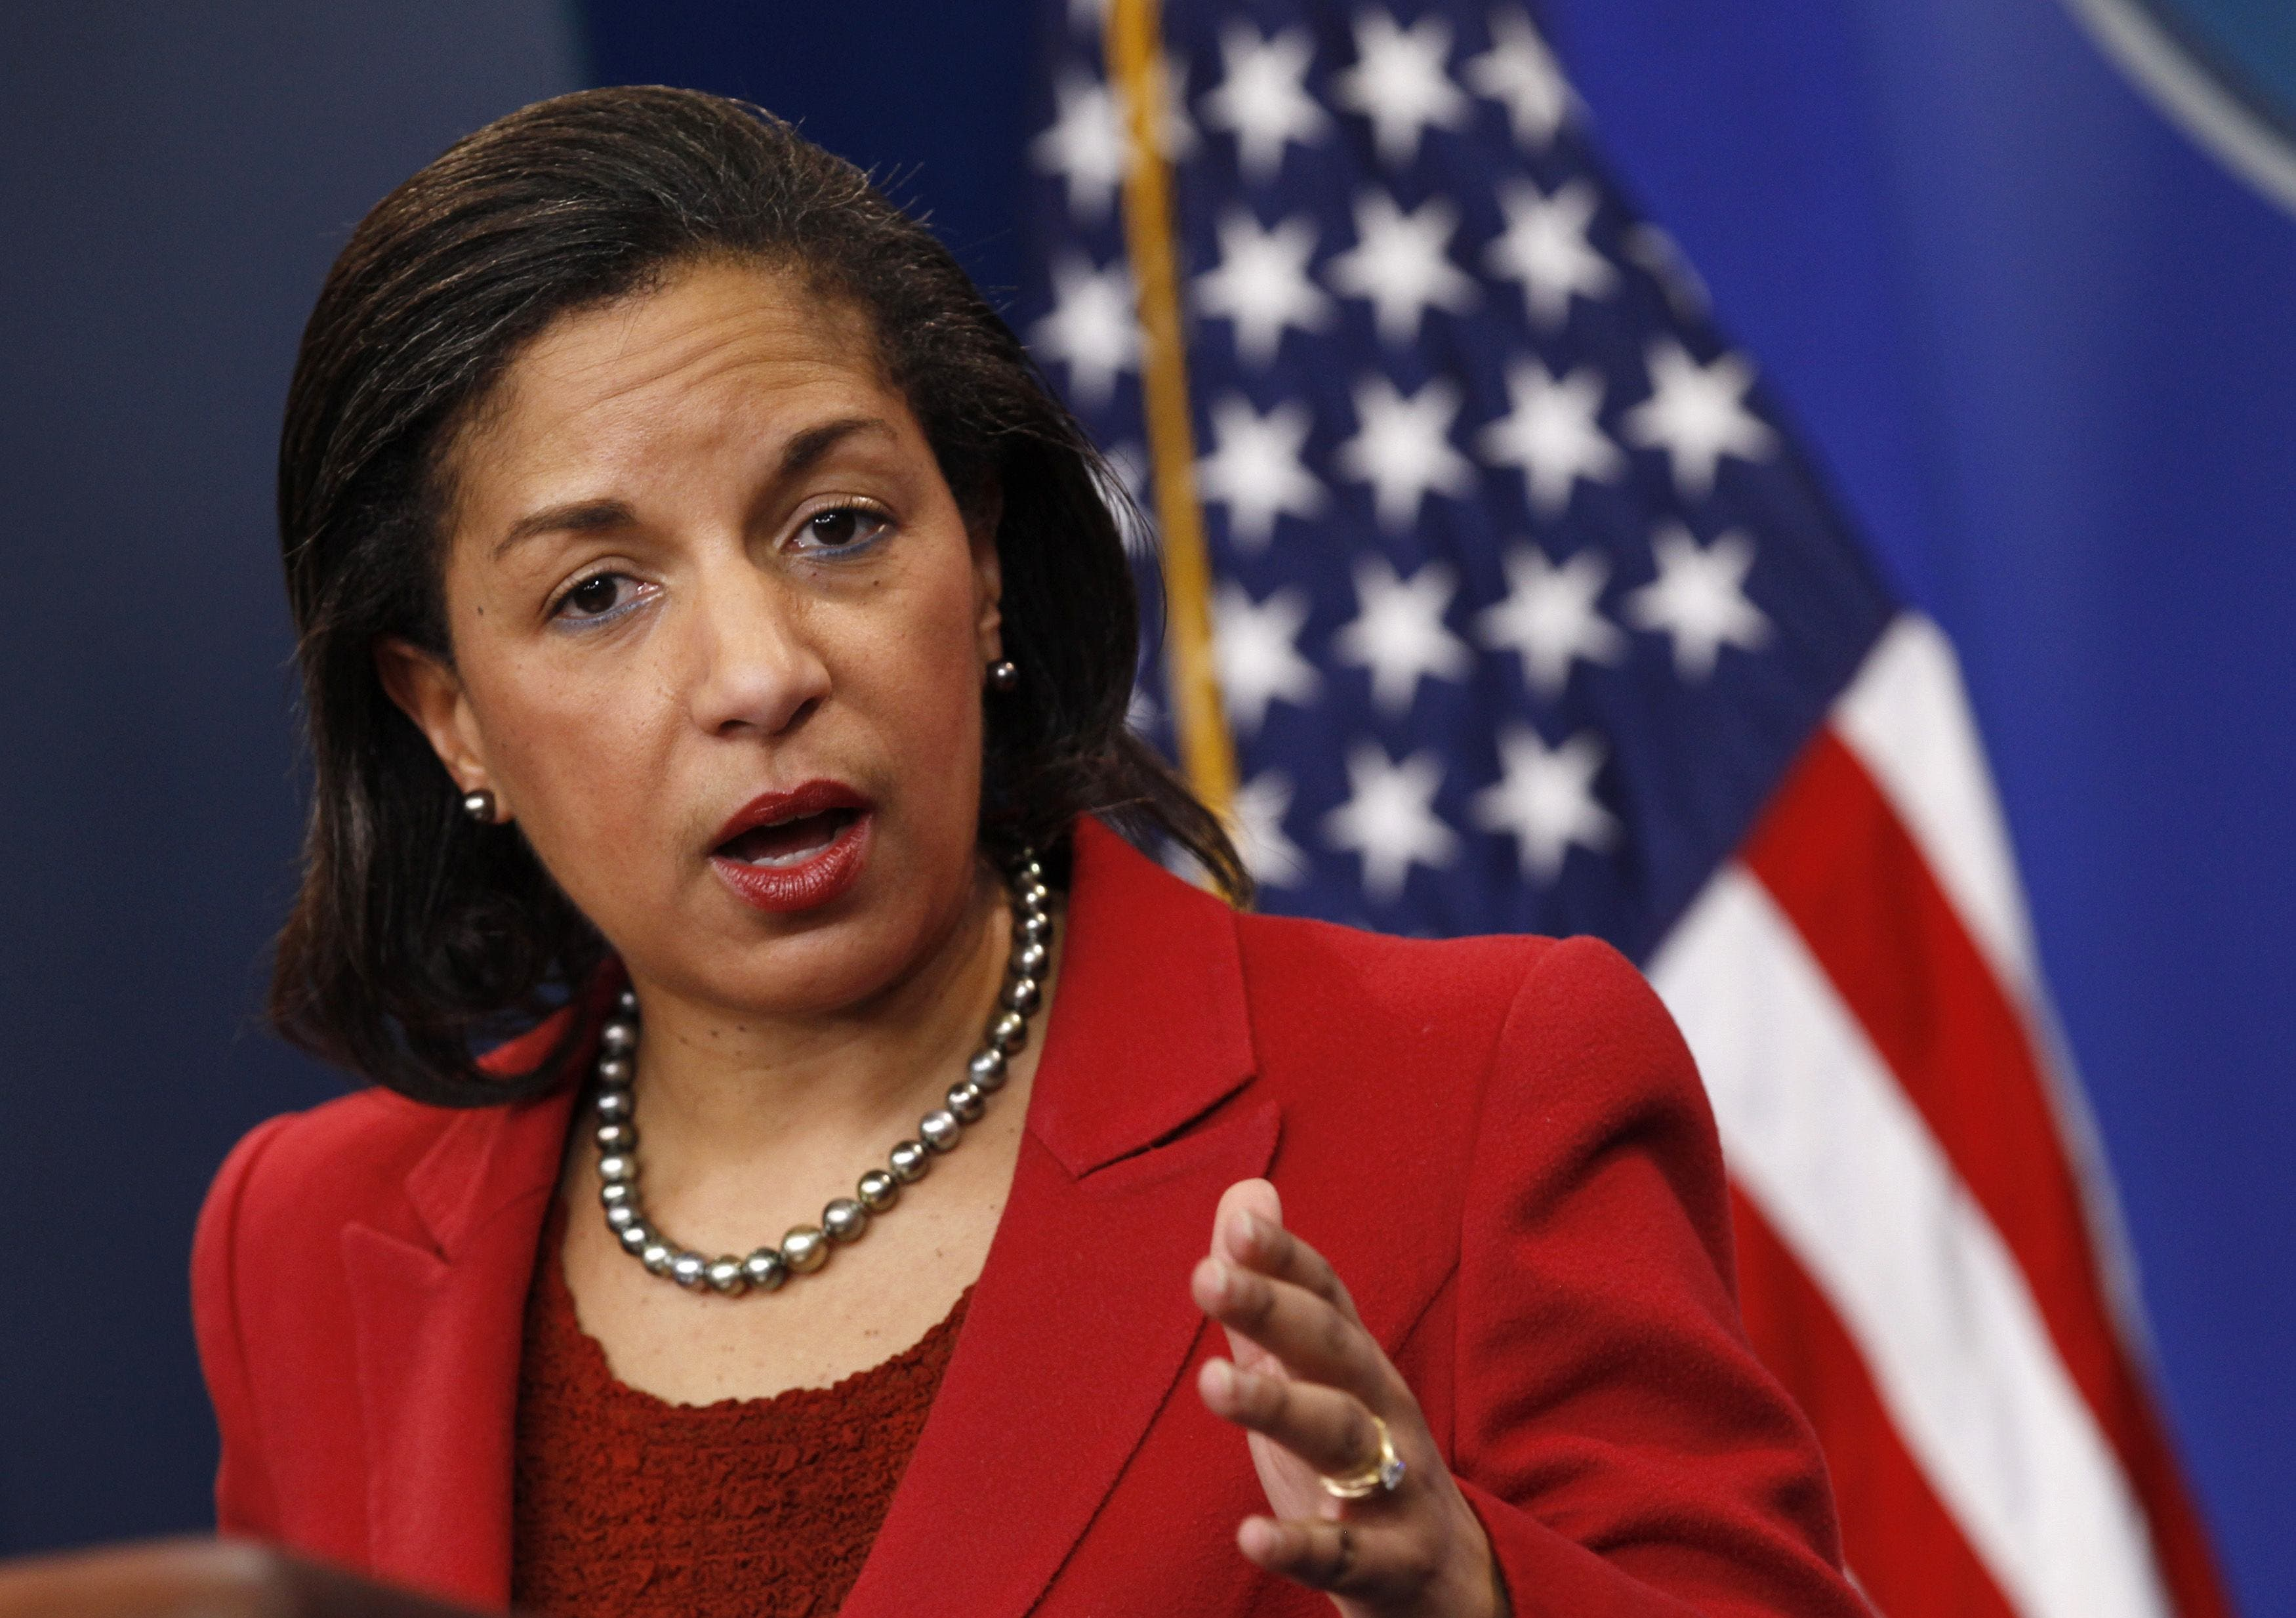 Former National Security Advisor and US ambassador to the United Nations Susan Rice. (AFP)